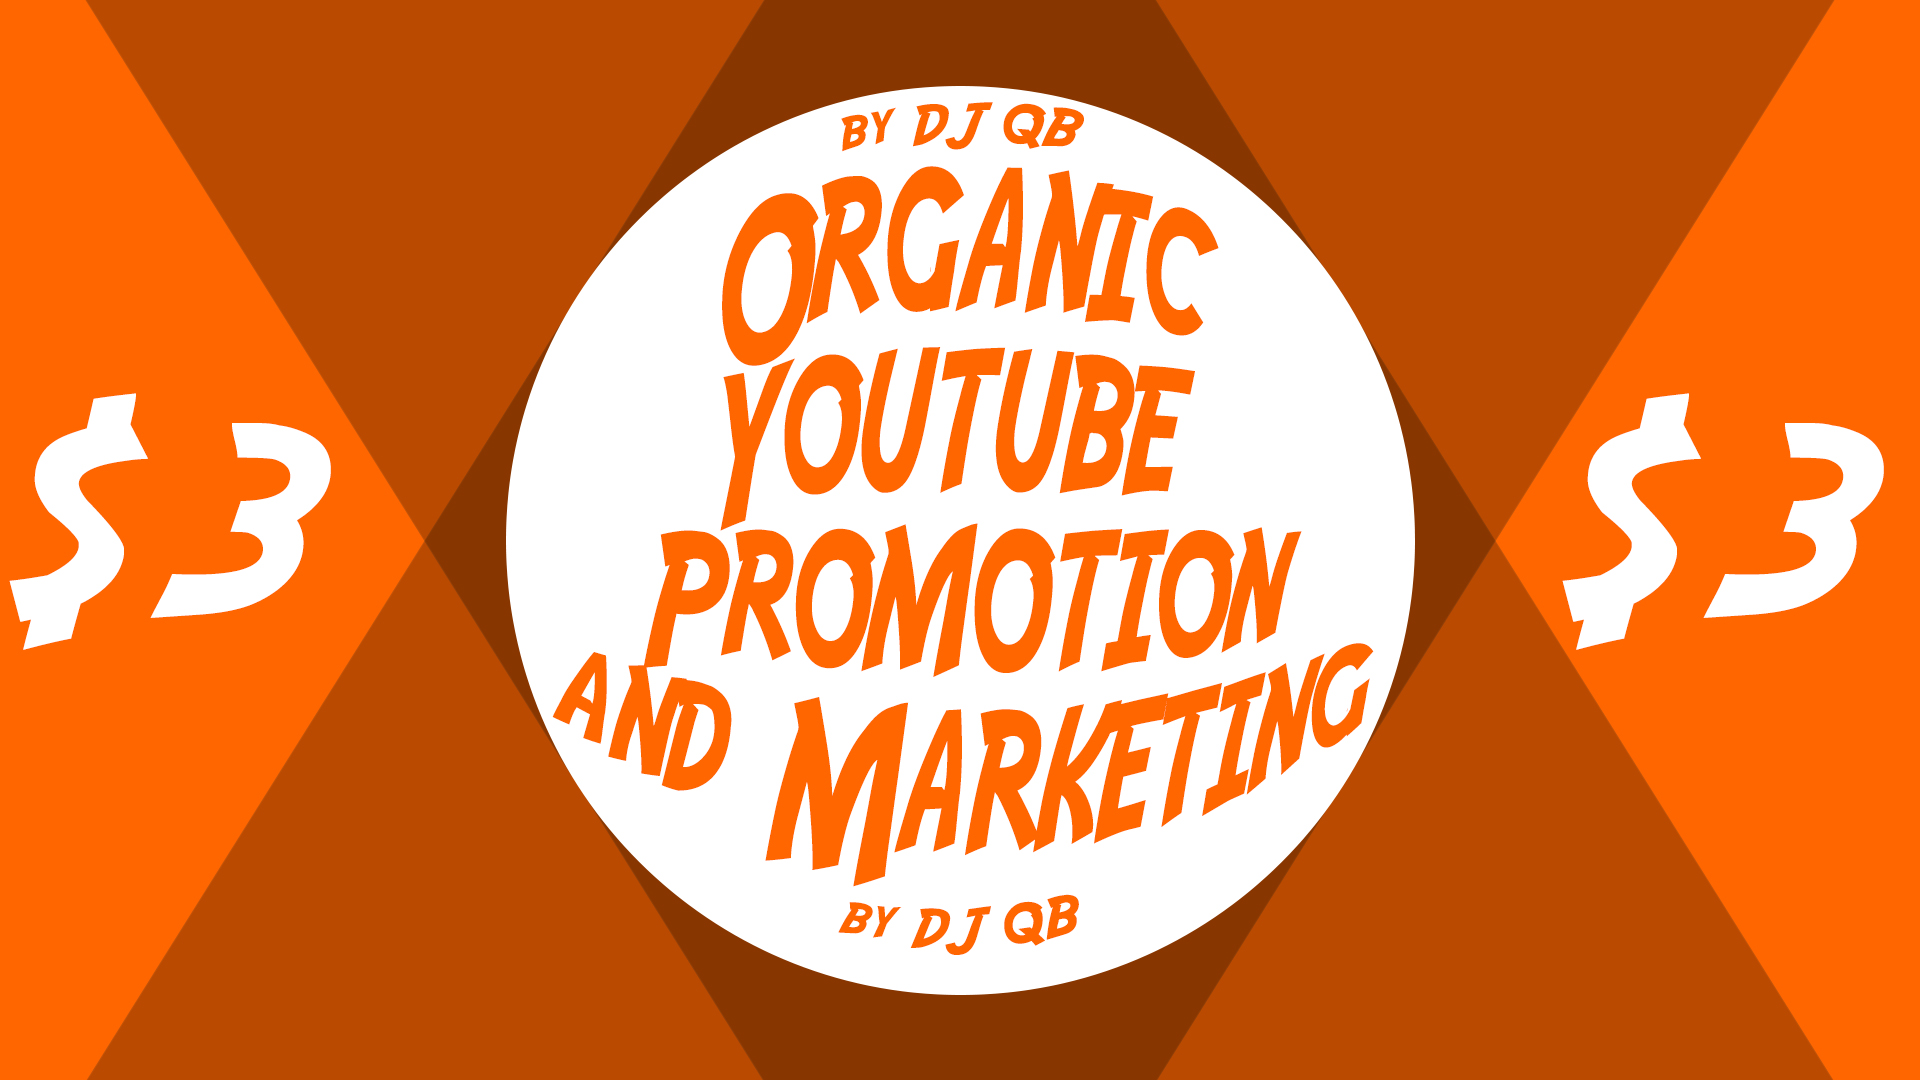 Video Promotion And Marketing